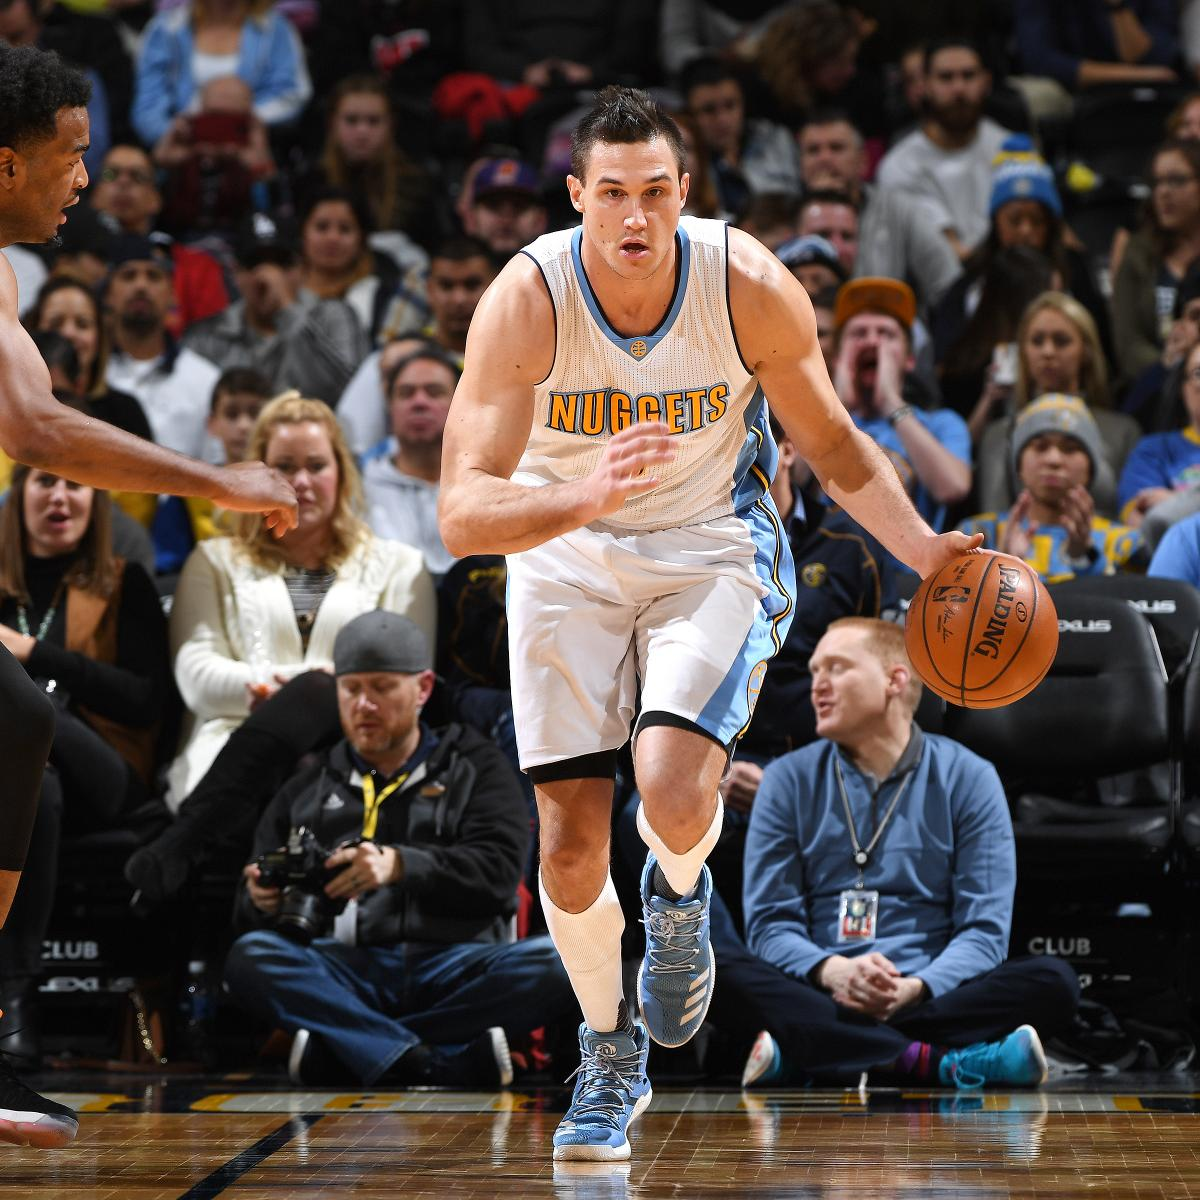 Nuggets Rumors: Danilo Gallinari Trade Rumors: Latest News, Speculation